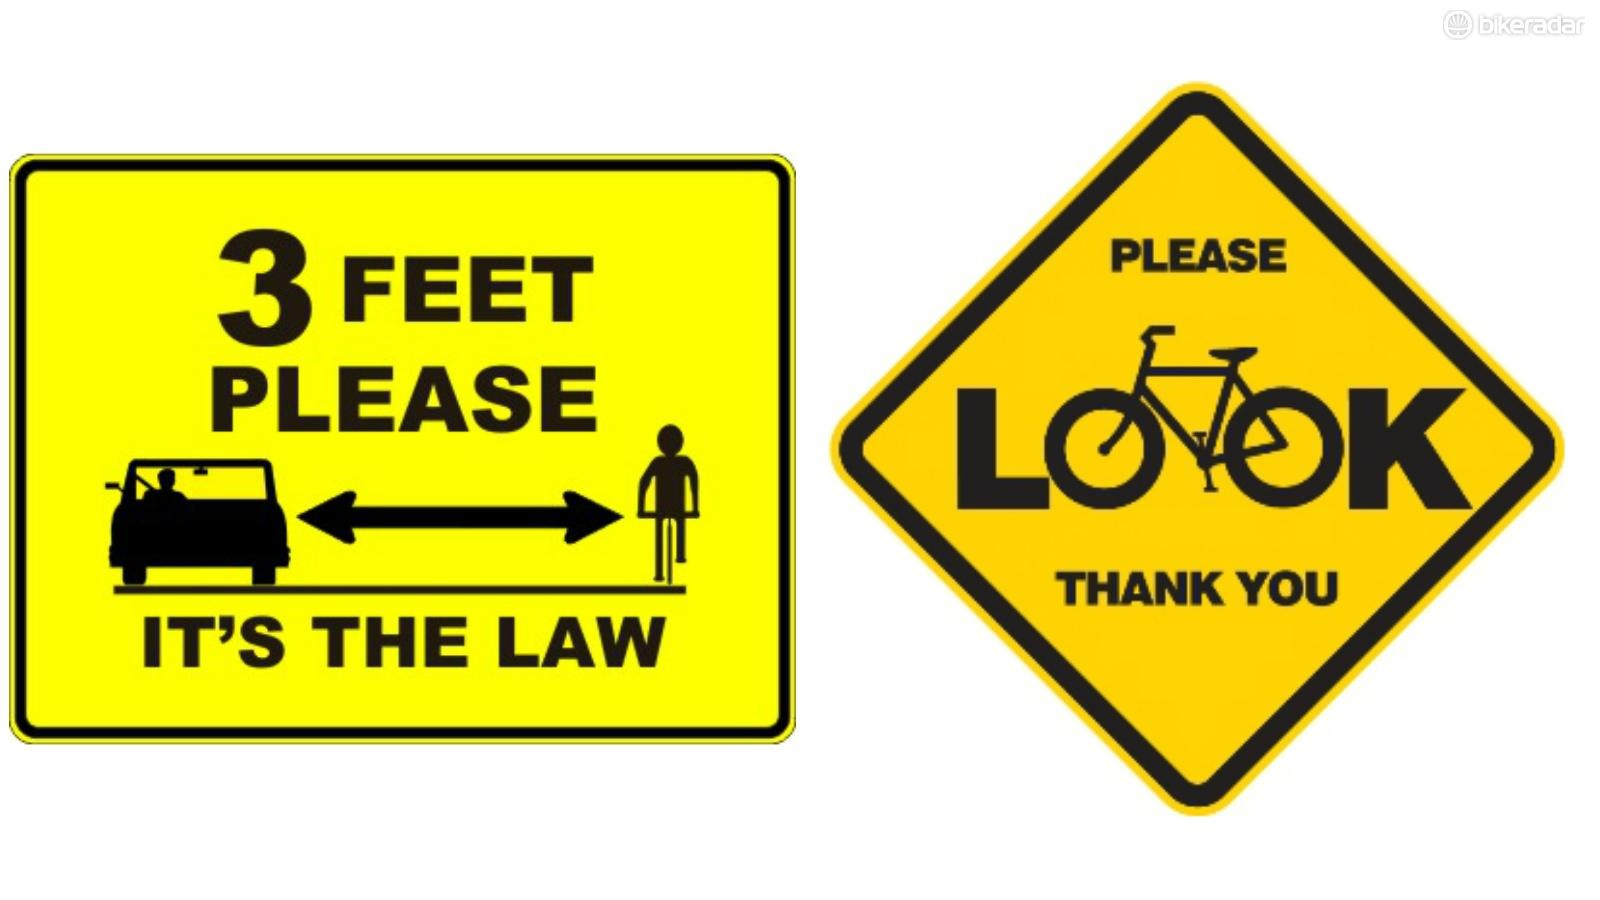 Stickers and magnets that show your support for cyclists' rights on the road might alert other drivers to the need to be aware of cyclists. At the very least, they can't hurt